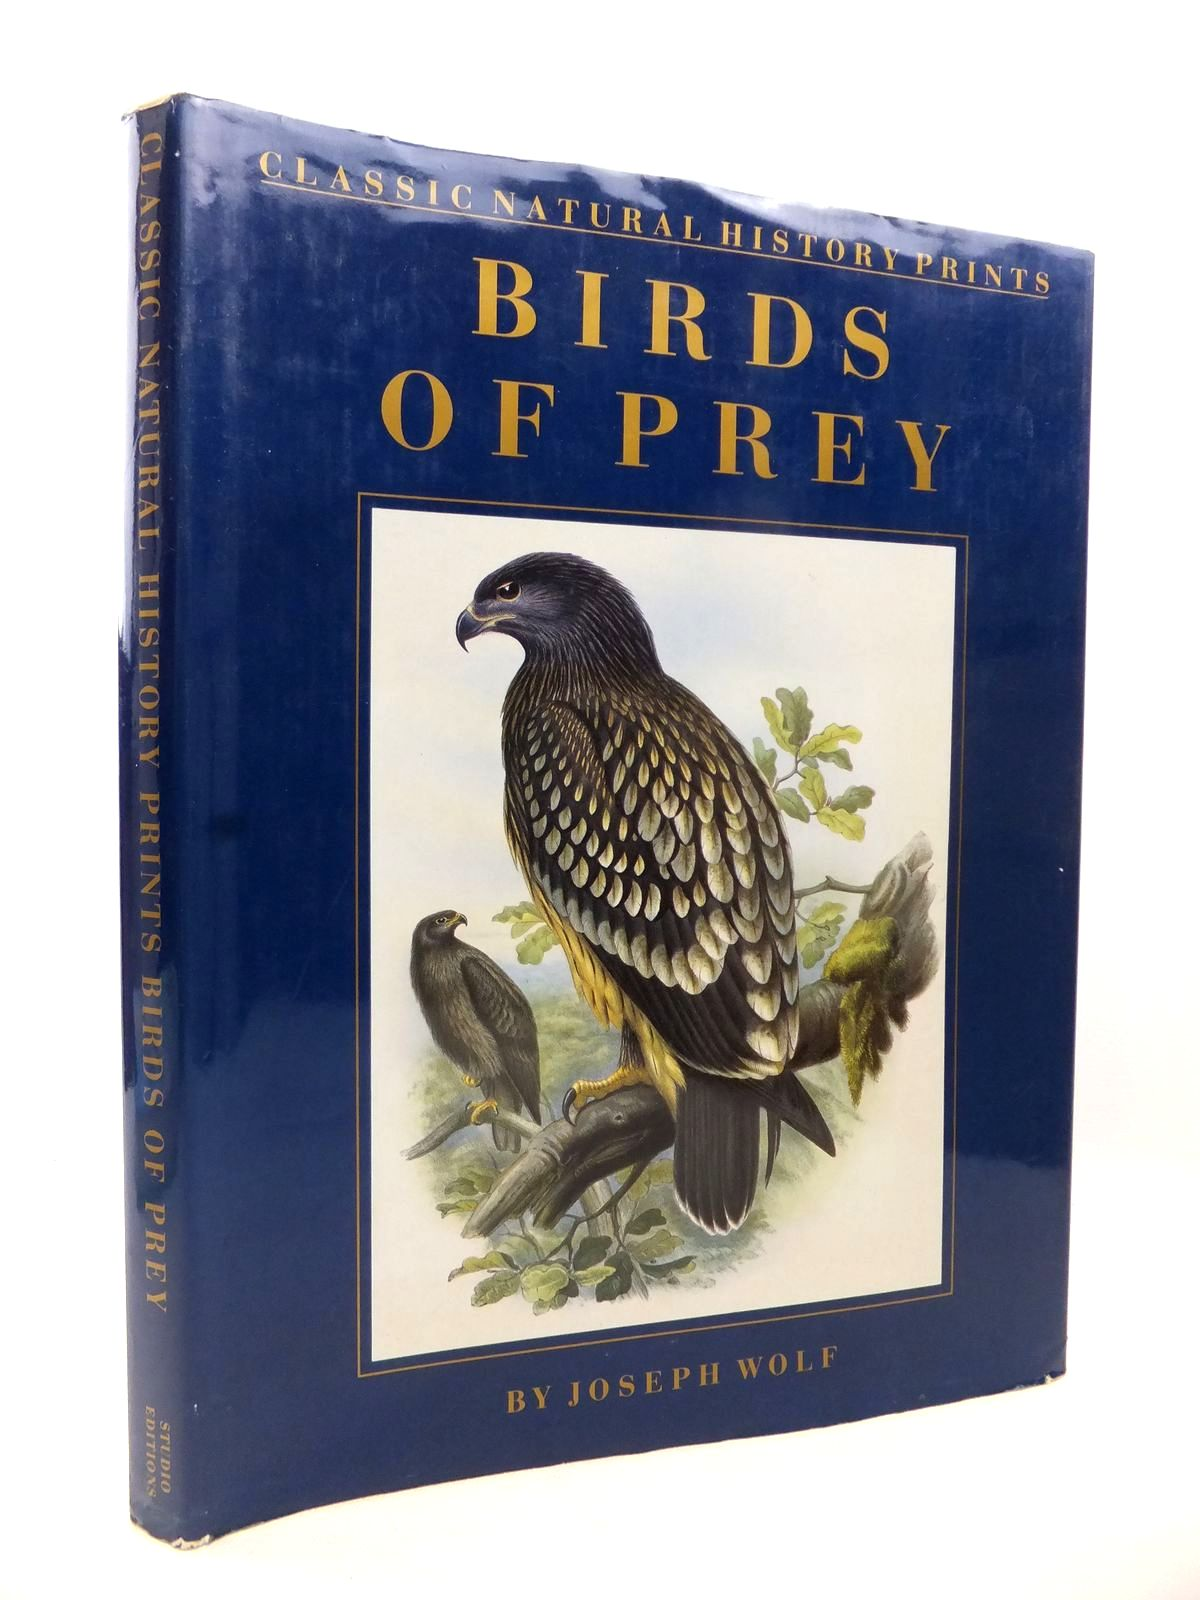 Photo of CLASSIC NATURAL HISTORY PRINTS: BIRDS OF PREY